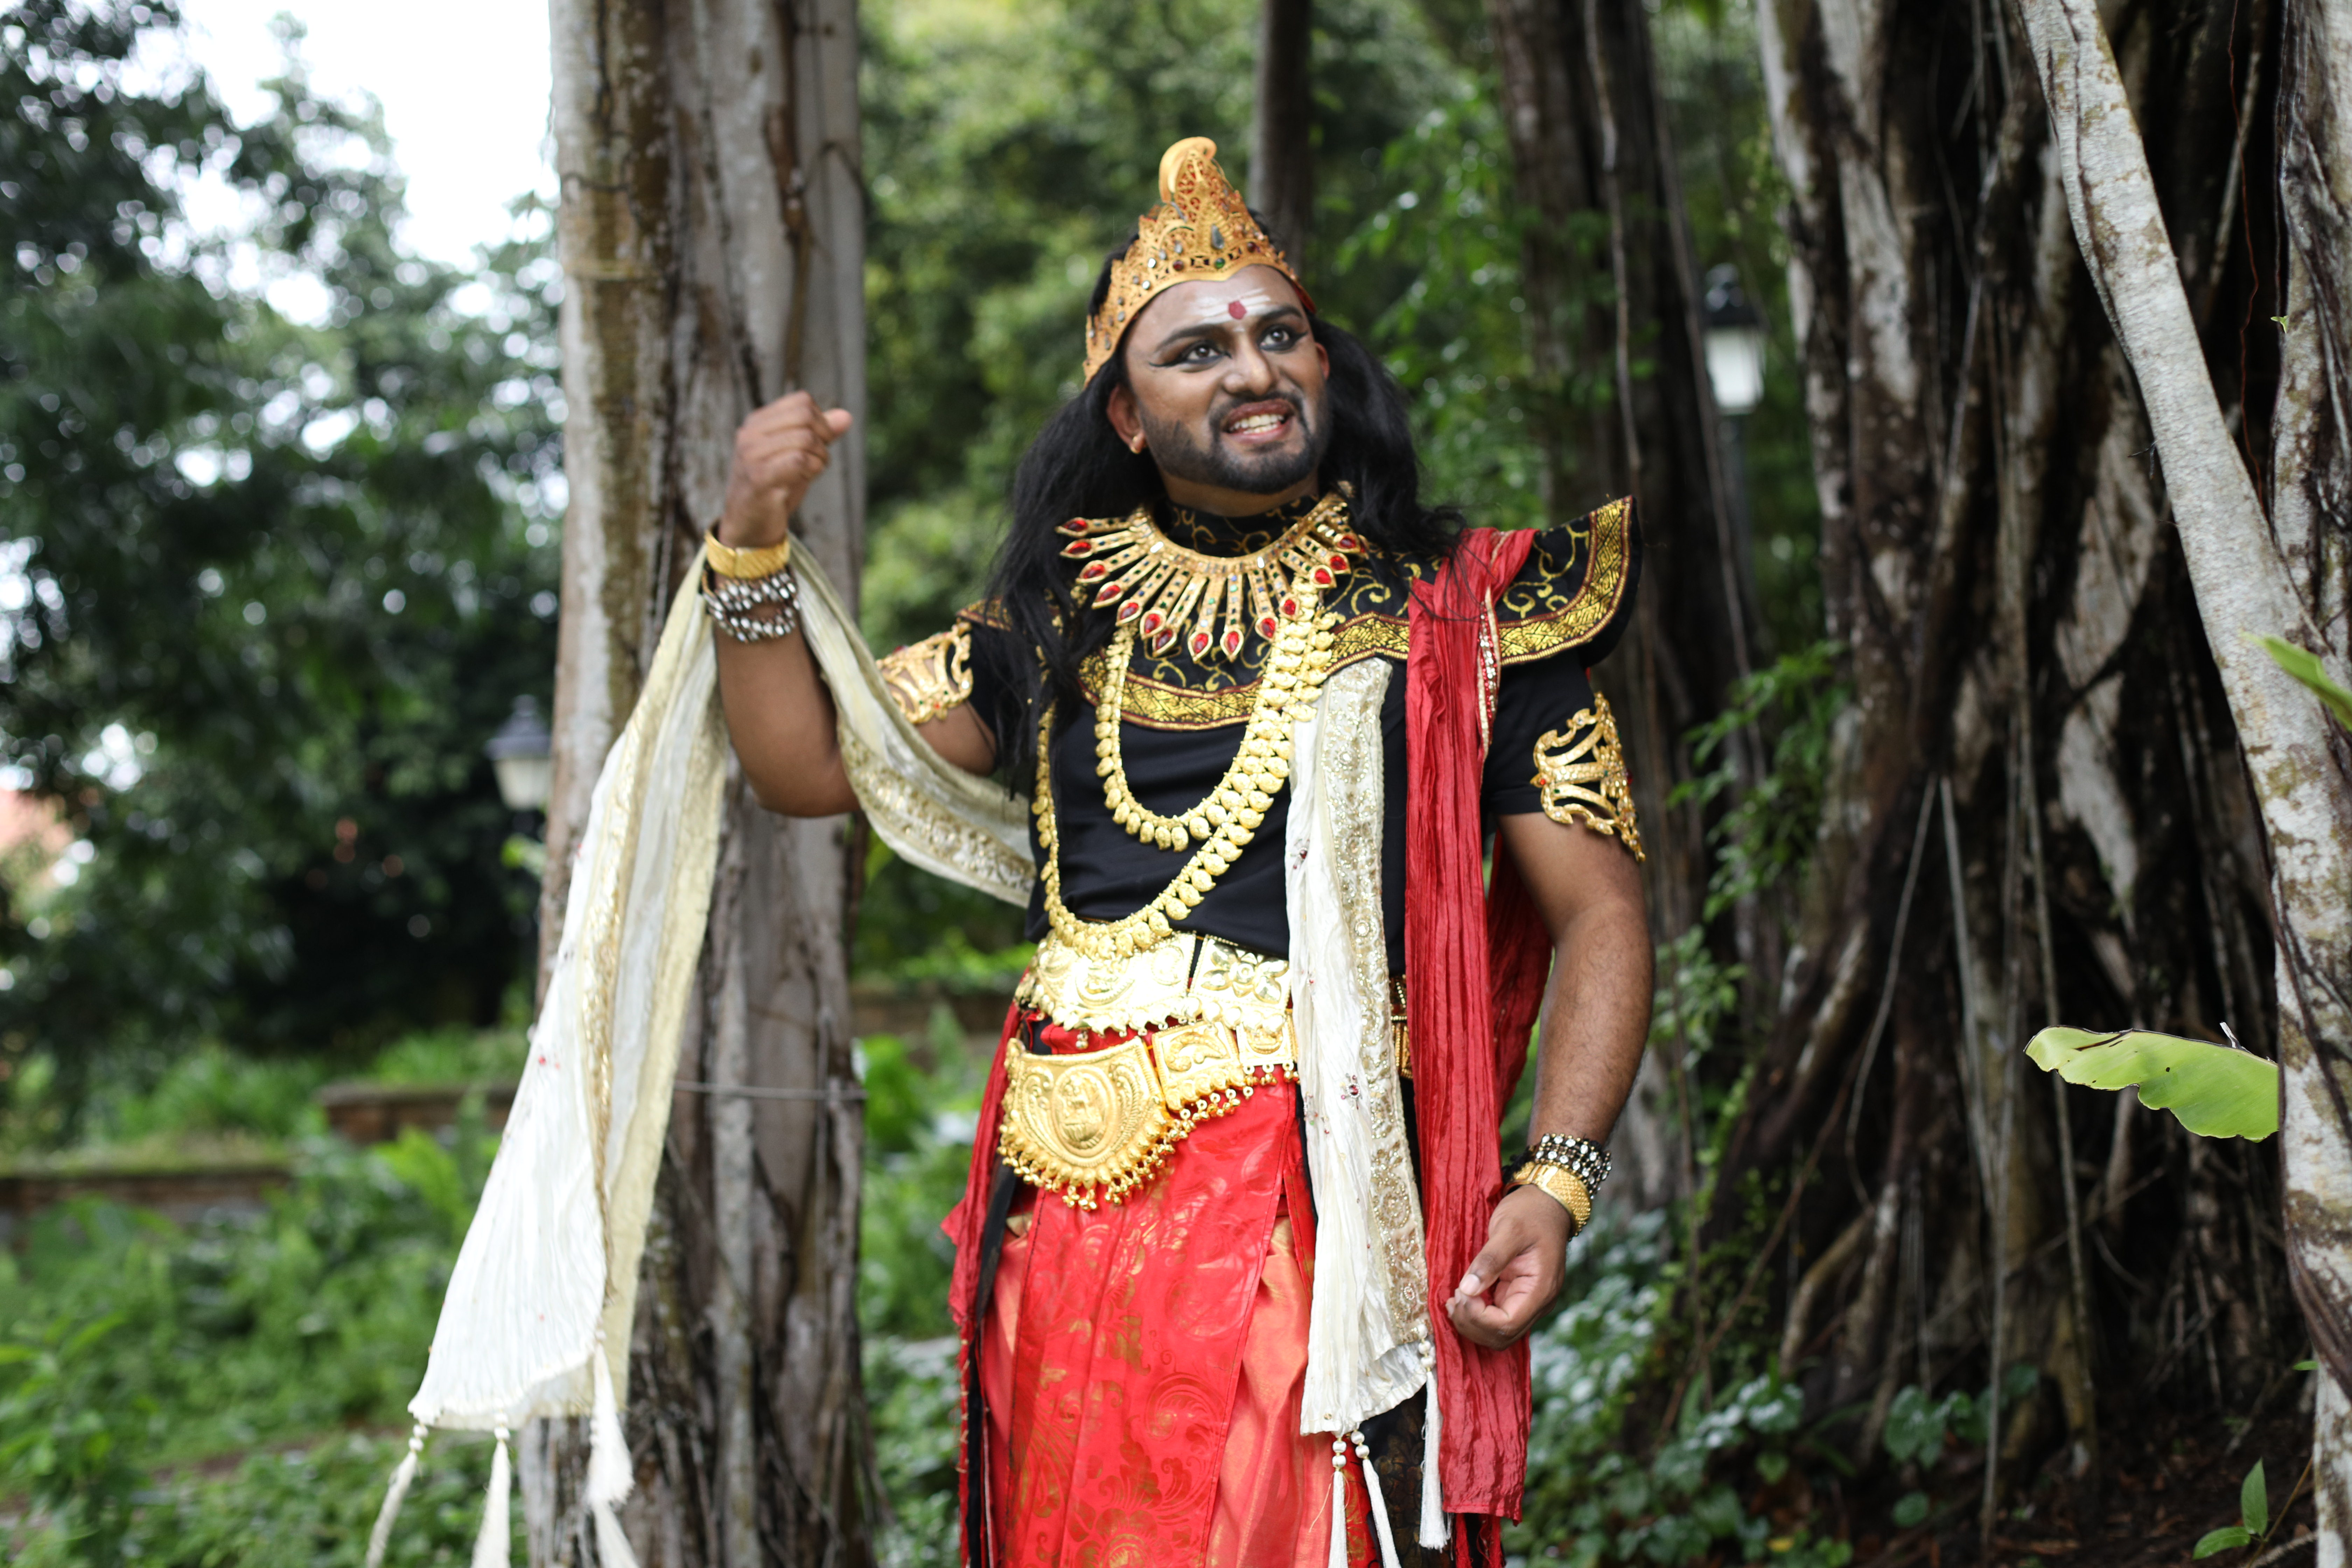 Ravana's knowledge, talent, and sheer arrogance inspired Thiru to portray it both in sounds as well as in his character. Photo CourtesyL MDT